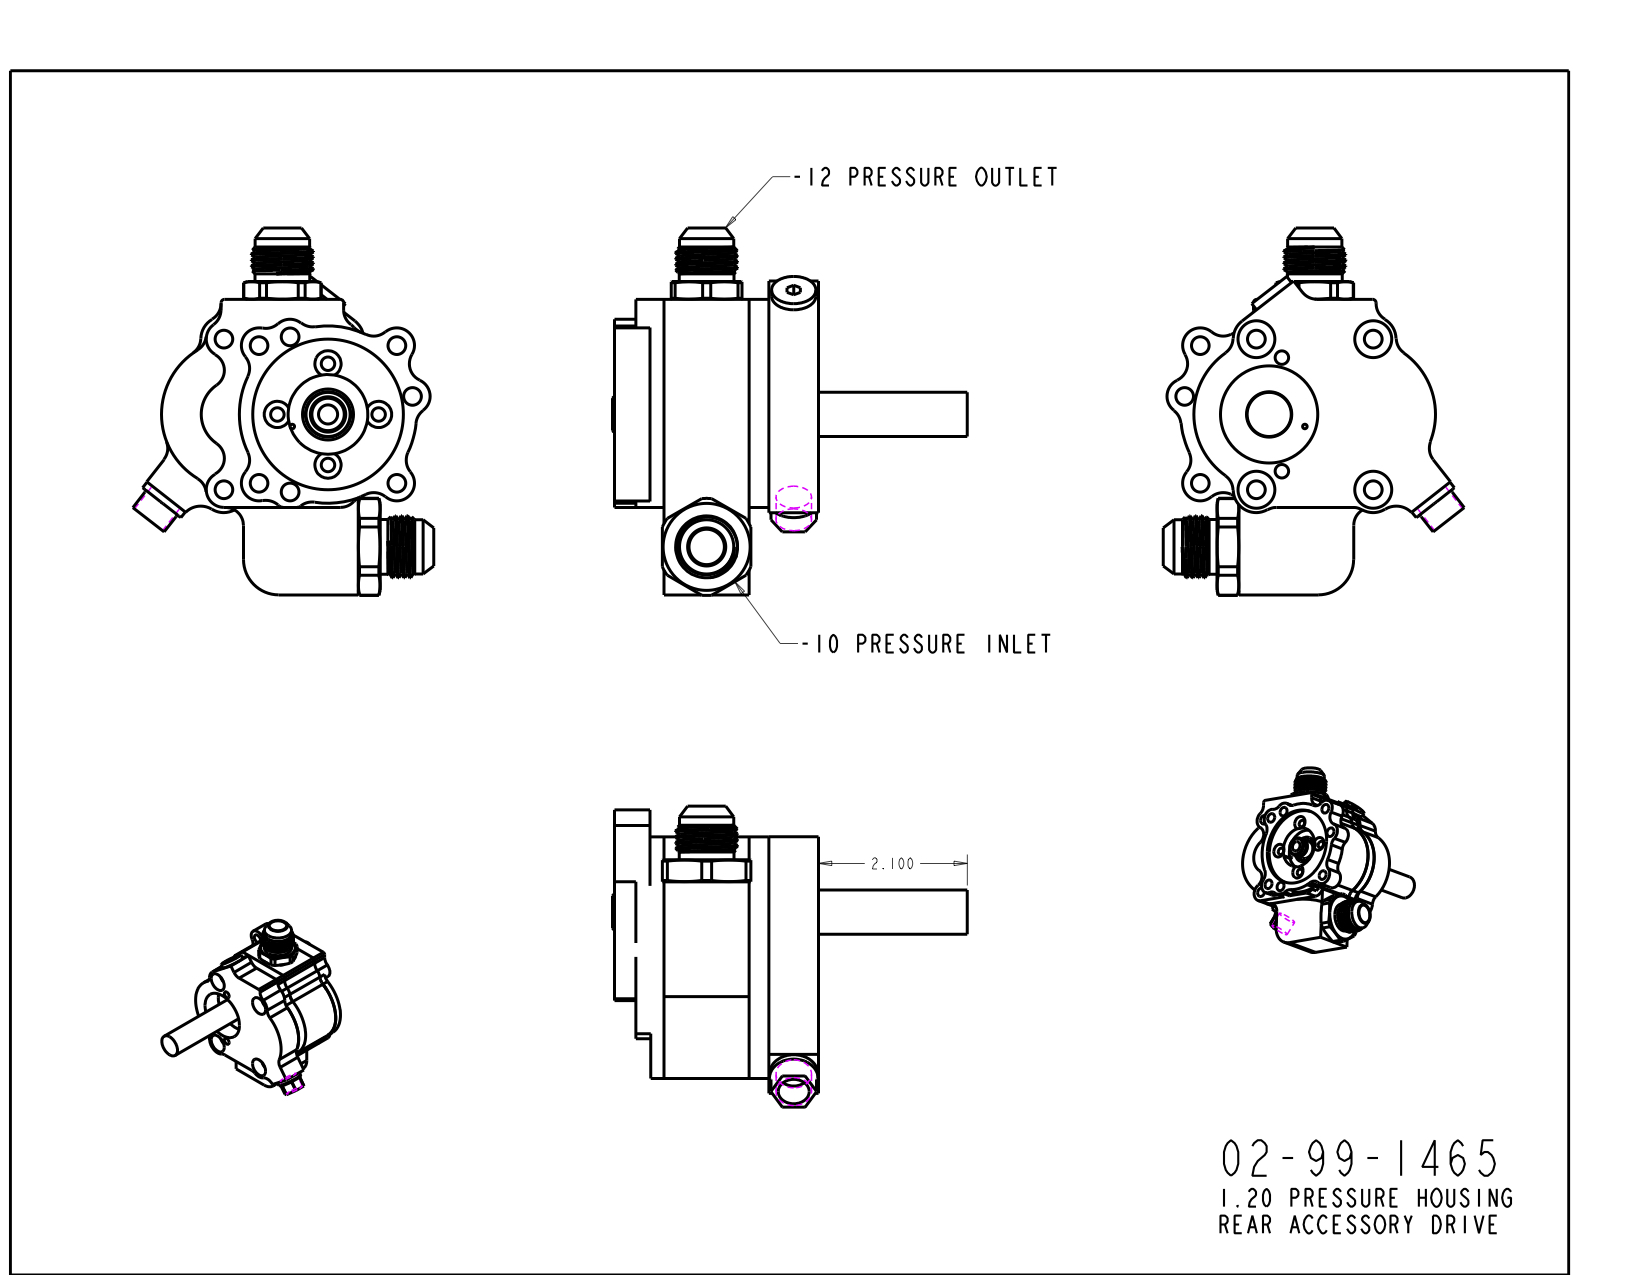 Race Car Belts likewise Honda Vfr400r Electric Starter Wiring Diagram as well Ignition Problem 3024 together with Formula Boat Wiring Diagram further Basic Hot Rod Wiring Diagram. on race car alternator wiring diagram